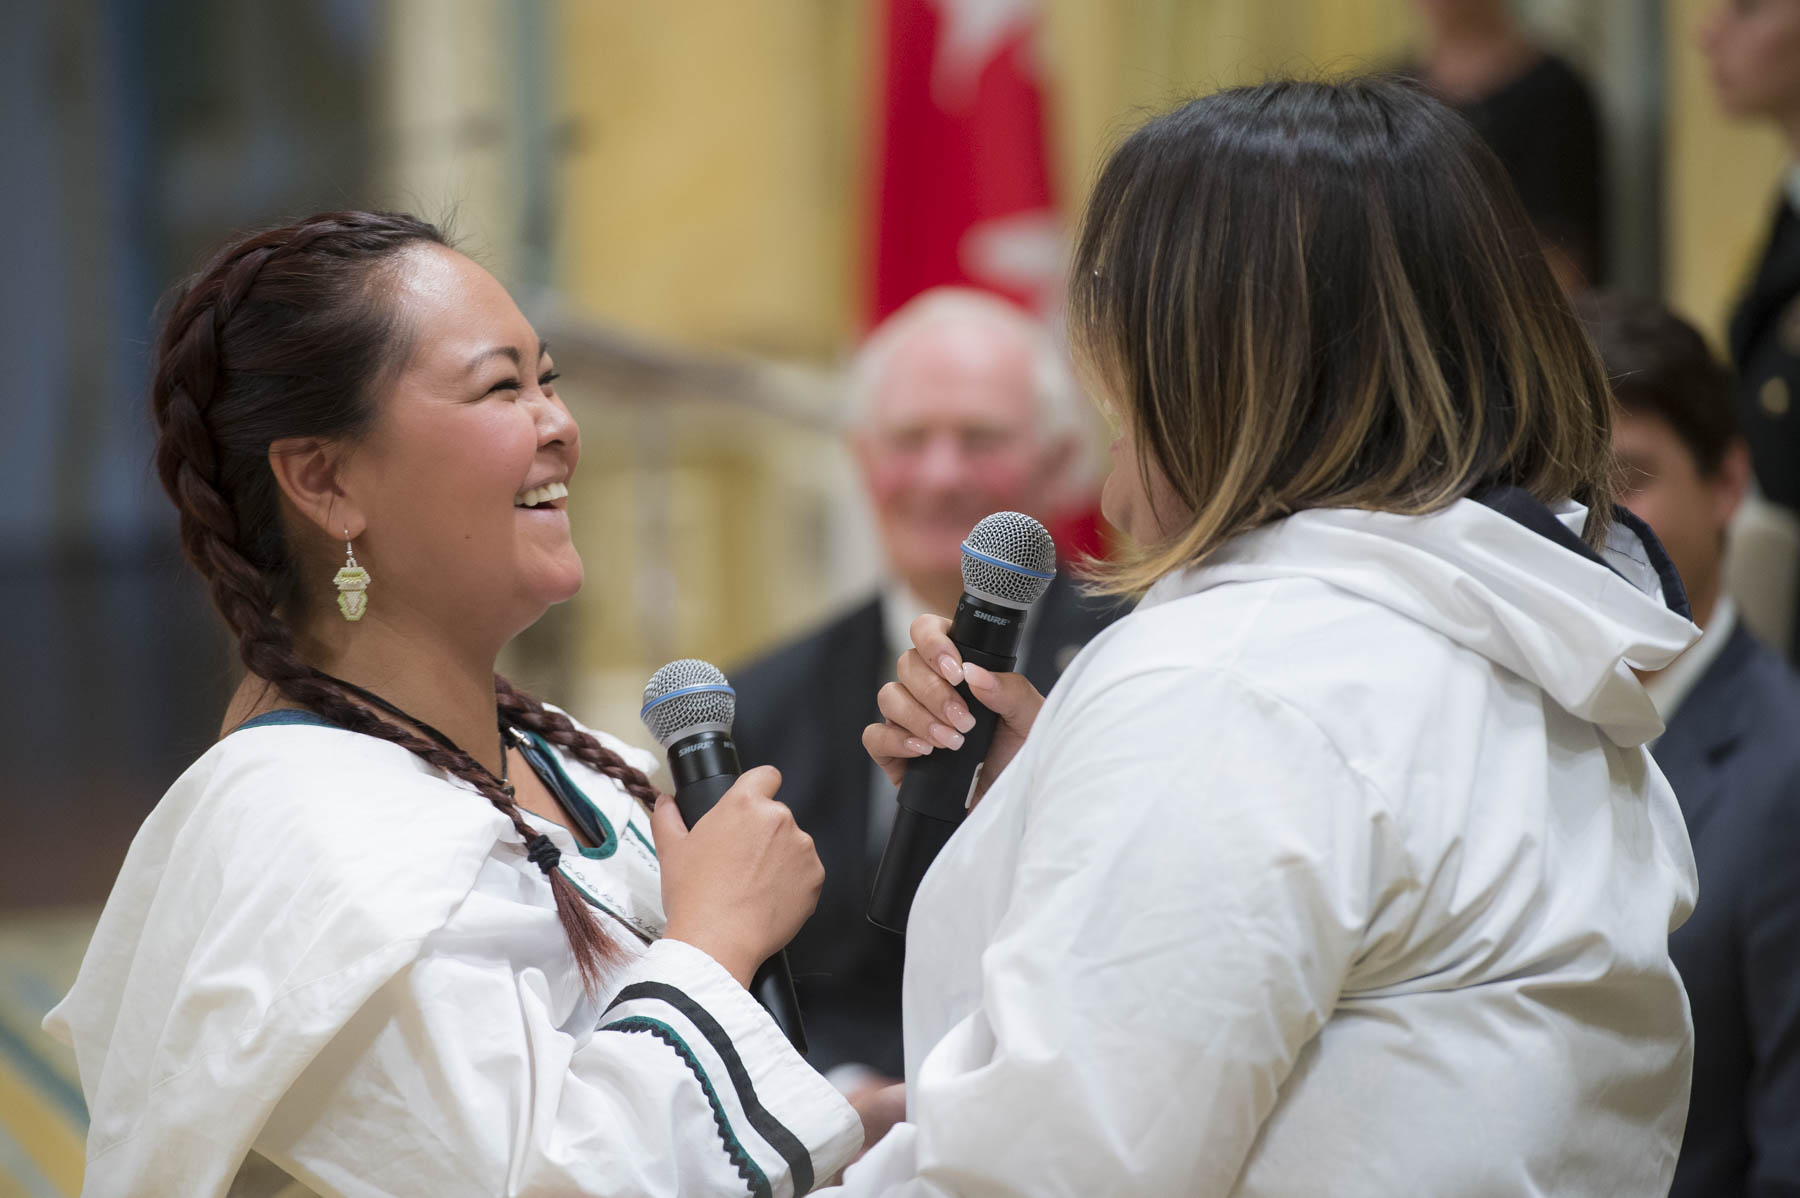 The ceremony ended with Inuit throat singers Tamara Takpannie and Janice Oolayou.